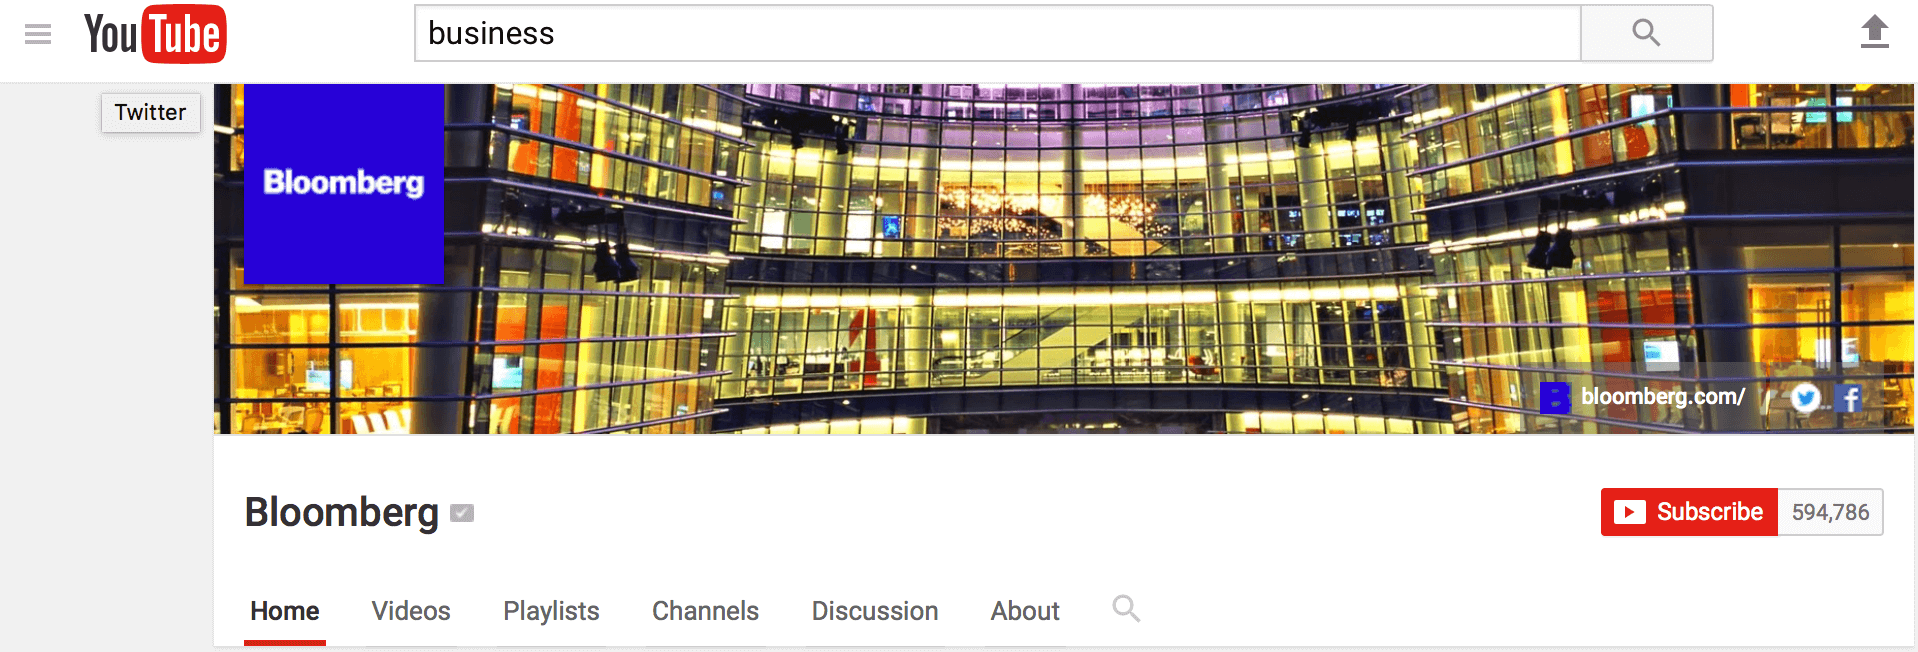 Channel art using large background image